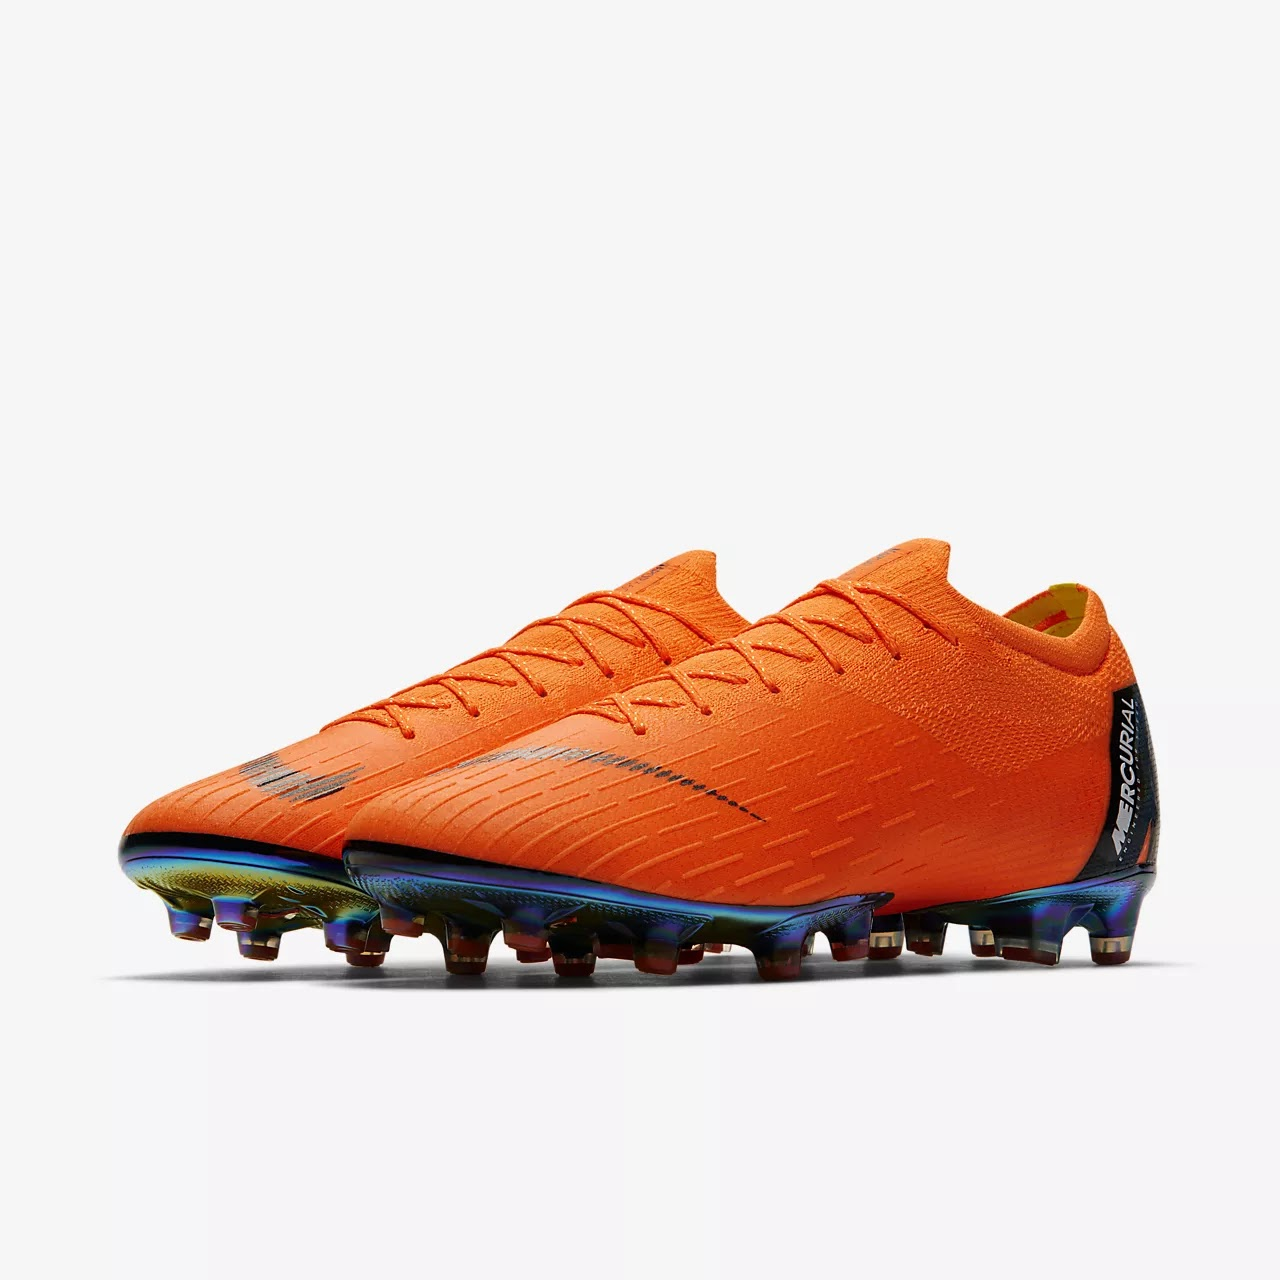 43d59a2b7 ... Elite - better known as Nike Magista Opus), there will be only one high- end, 'mid-cut' version of the Nike FTR10 boot and no traditional synthetic  one.